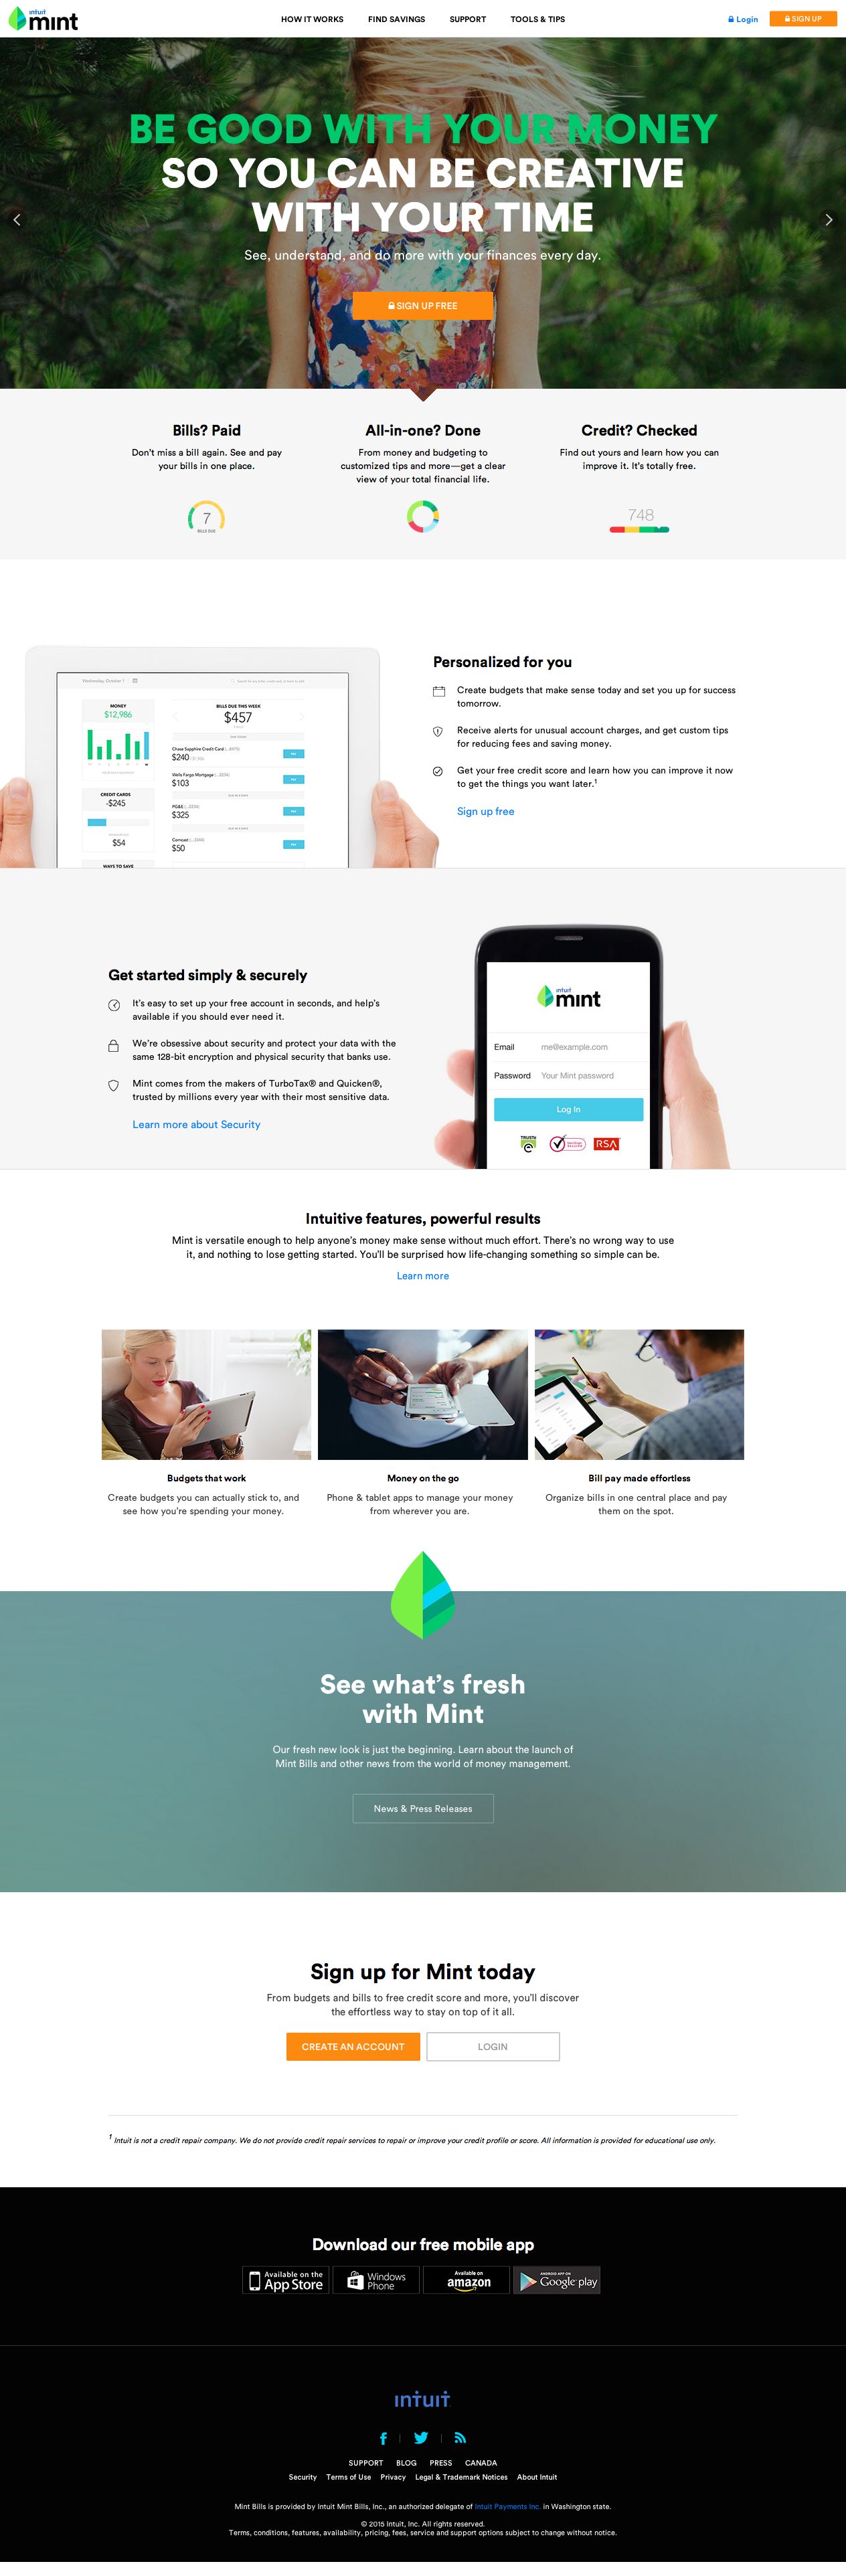 Perfect Mint Website Design. VIEW ENTIRE HOMEPAGE